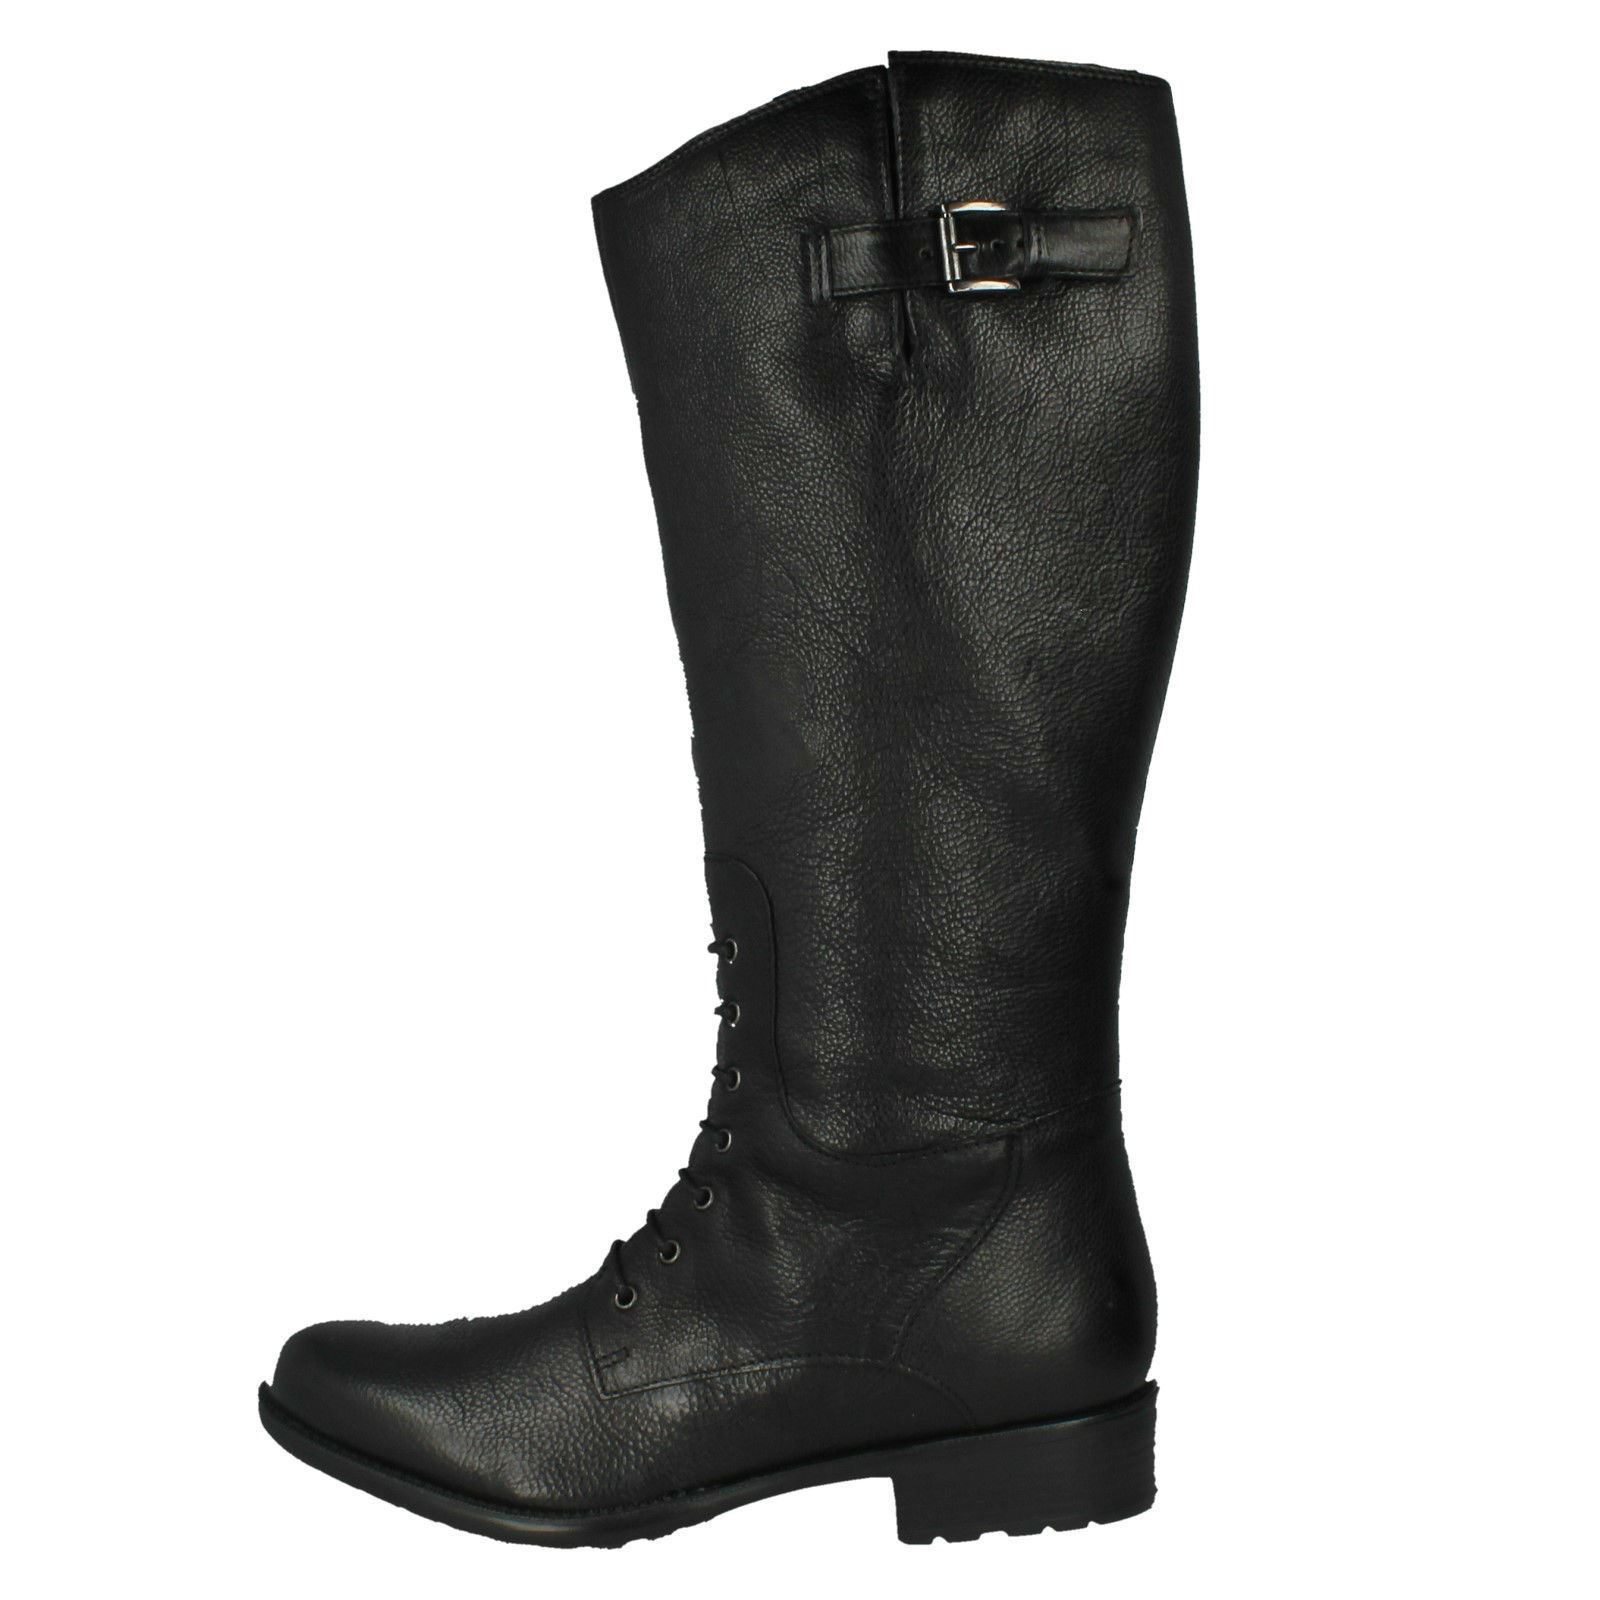 Up Length Knee Zip Boots Black Ladies Clarks Mullin Clove pqEwO4BP